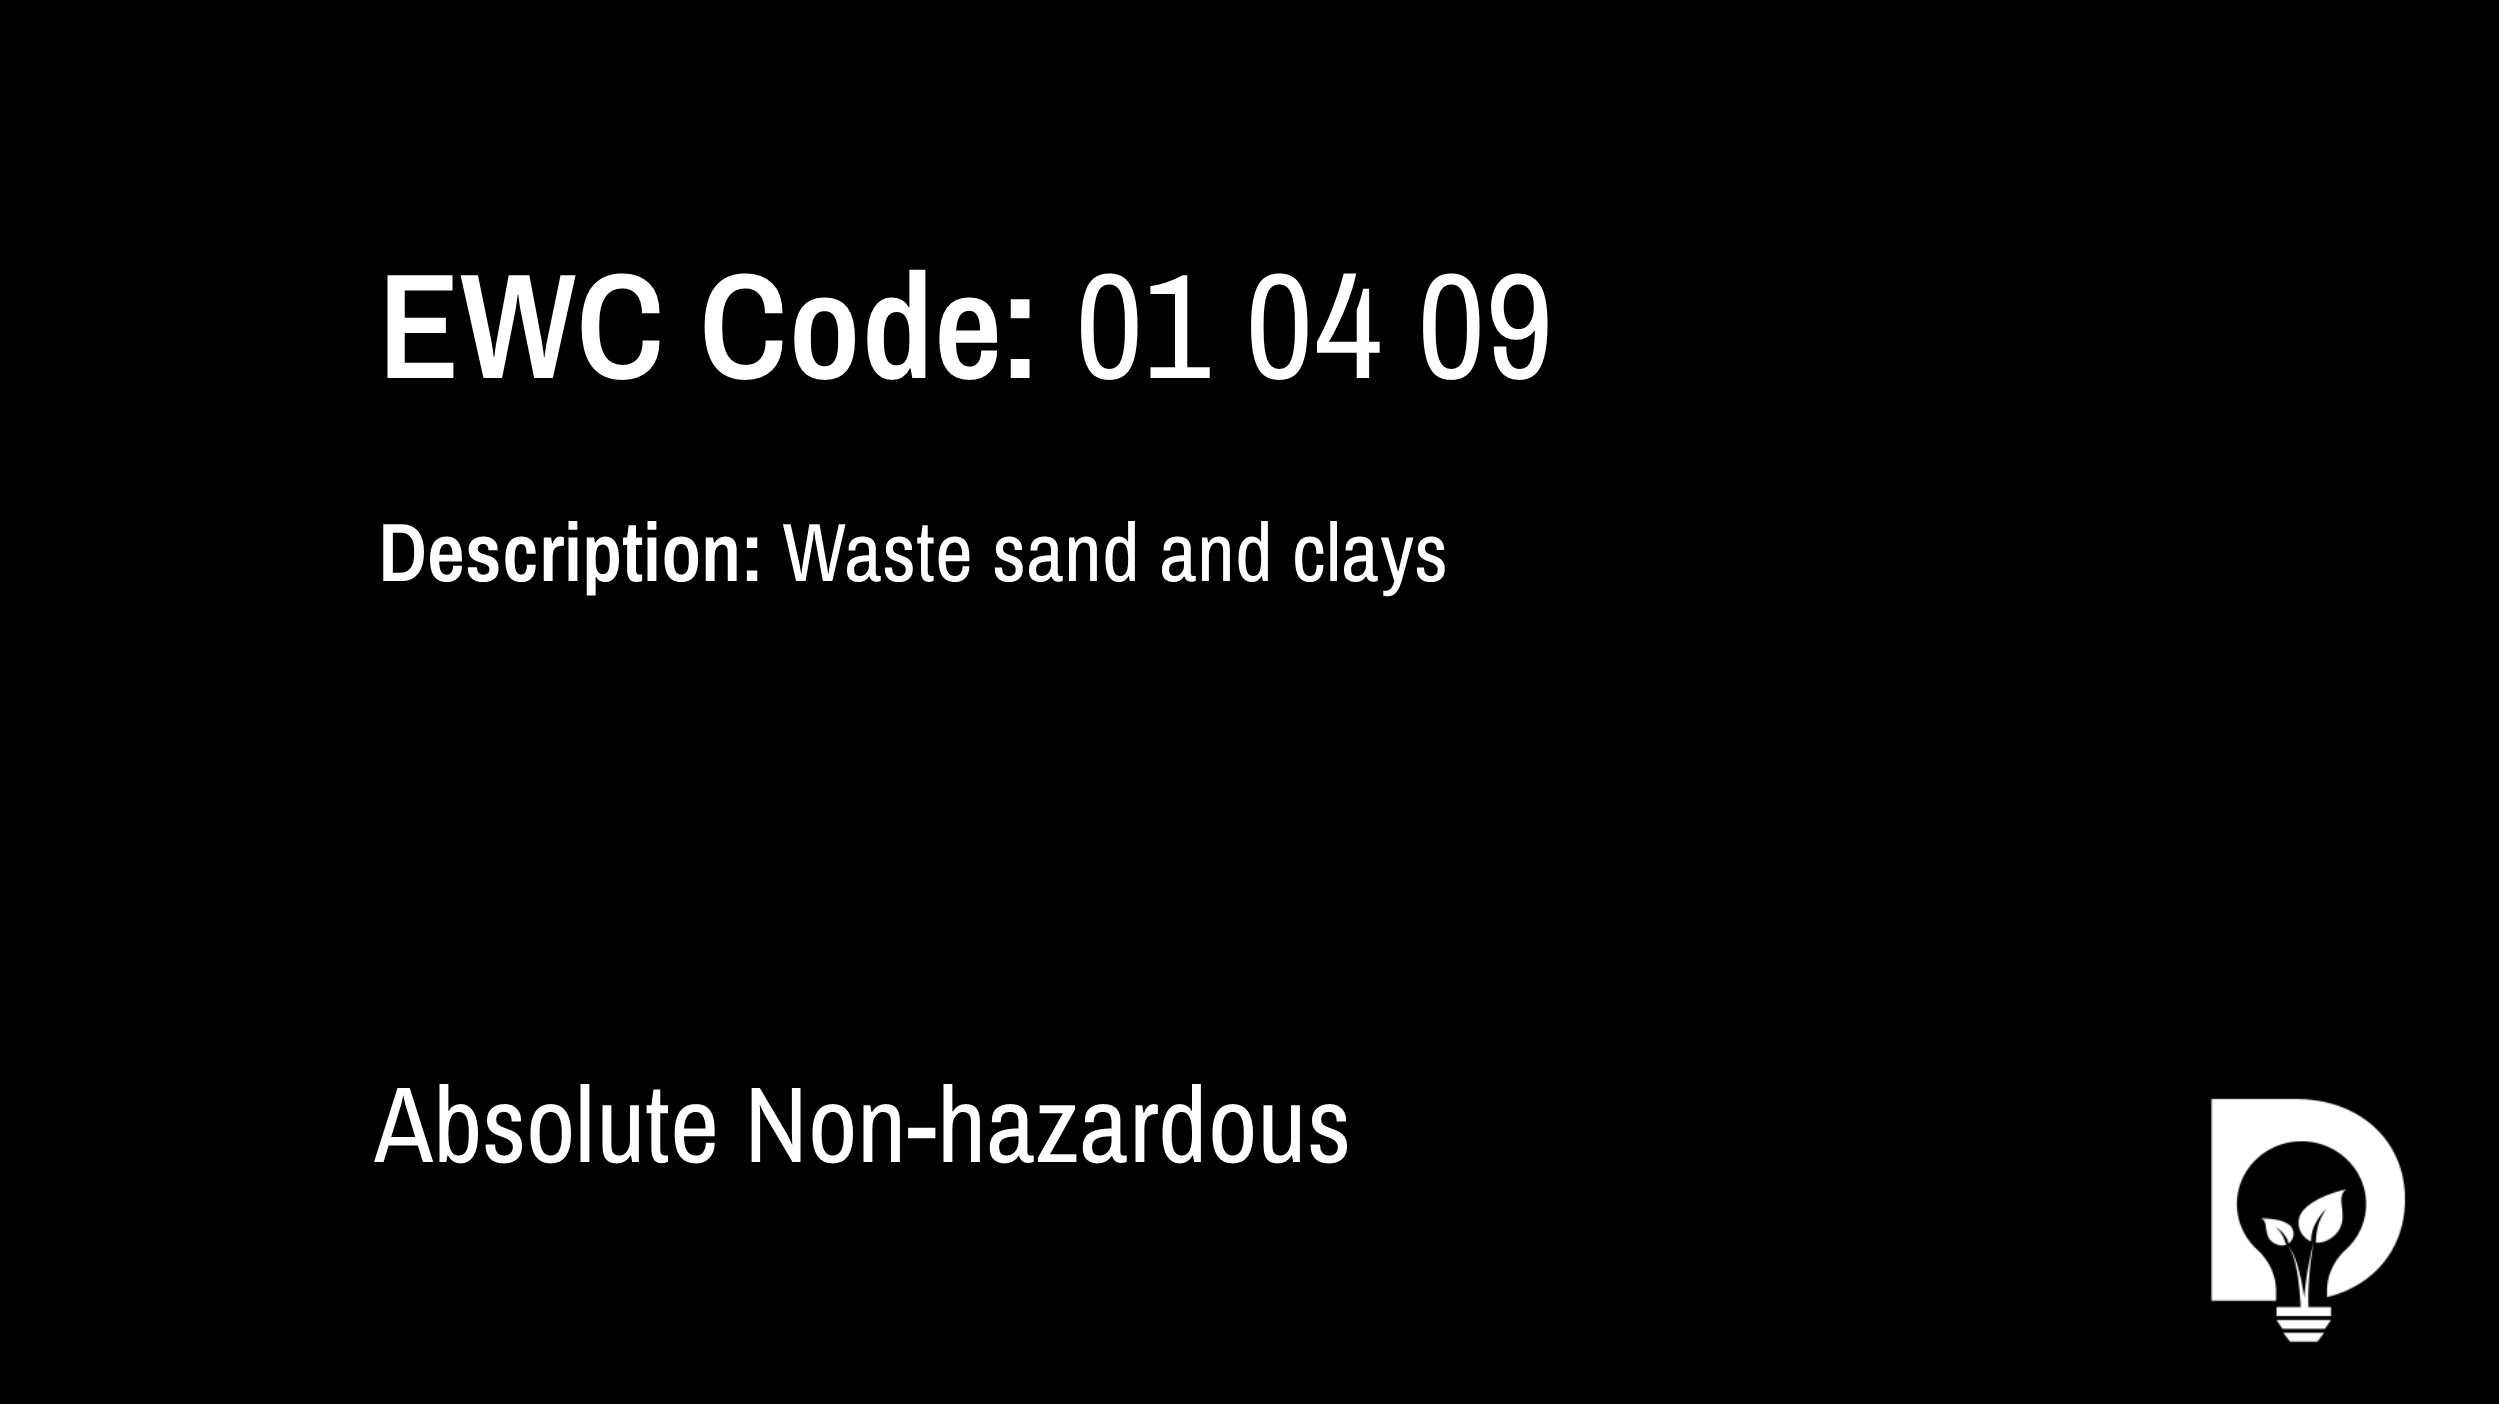 EWC Code: 01 04 09 - waste sand and clays. Type: Absolute Non-hazardous. Image by Dsposal